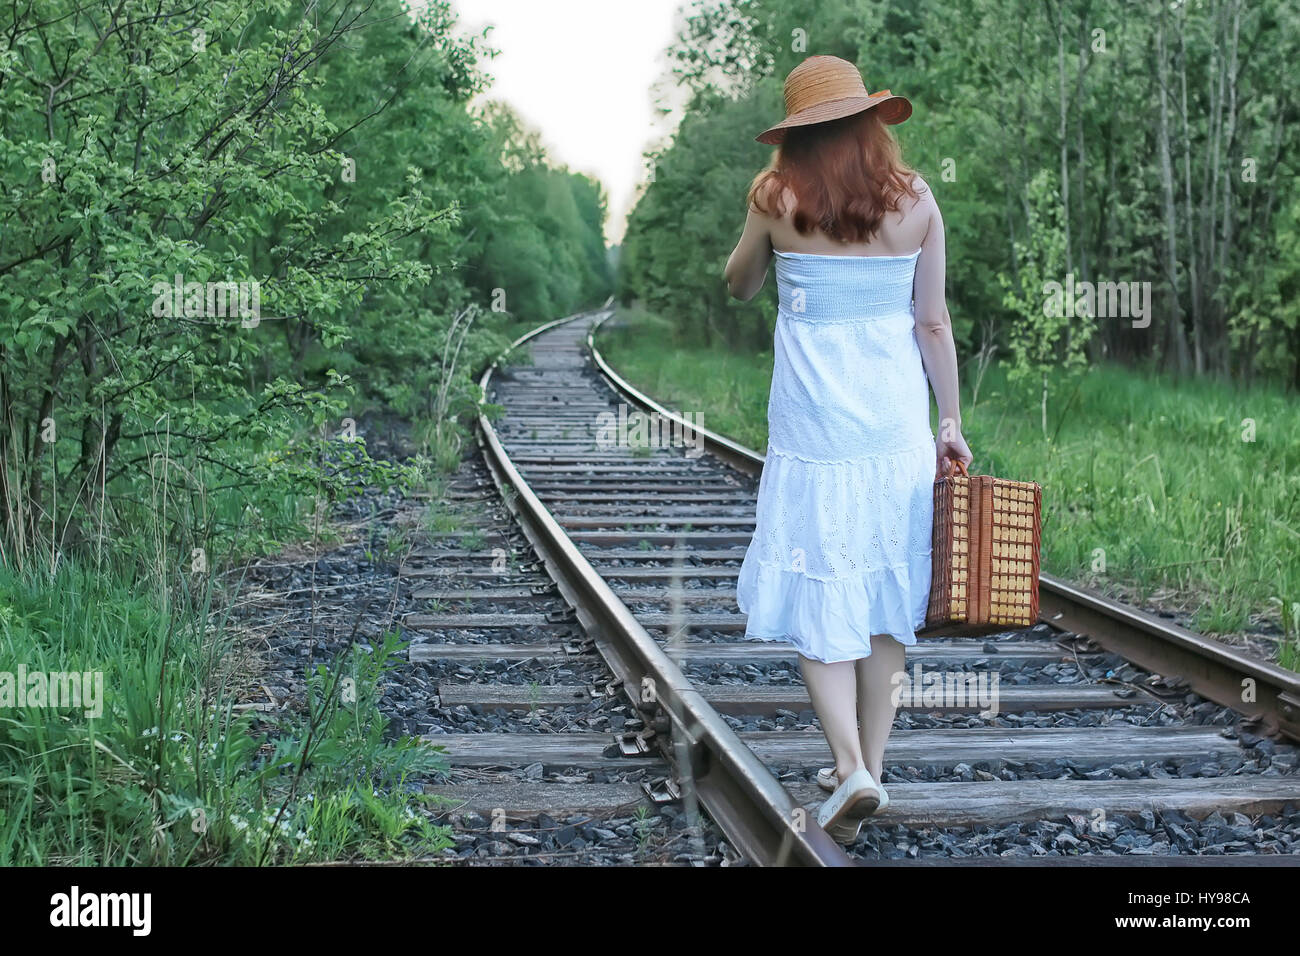 girl in a white sundress and wicker suitcase walking on rails Stock Photo